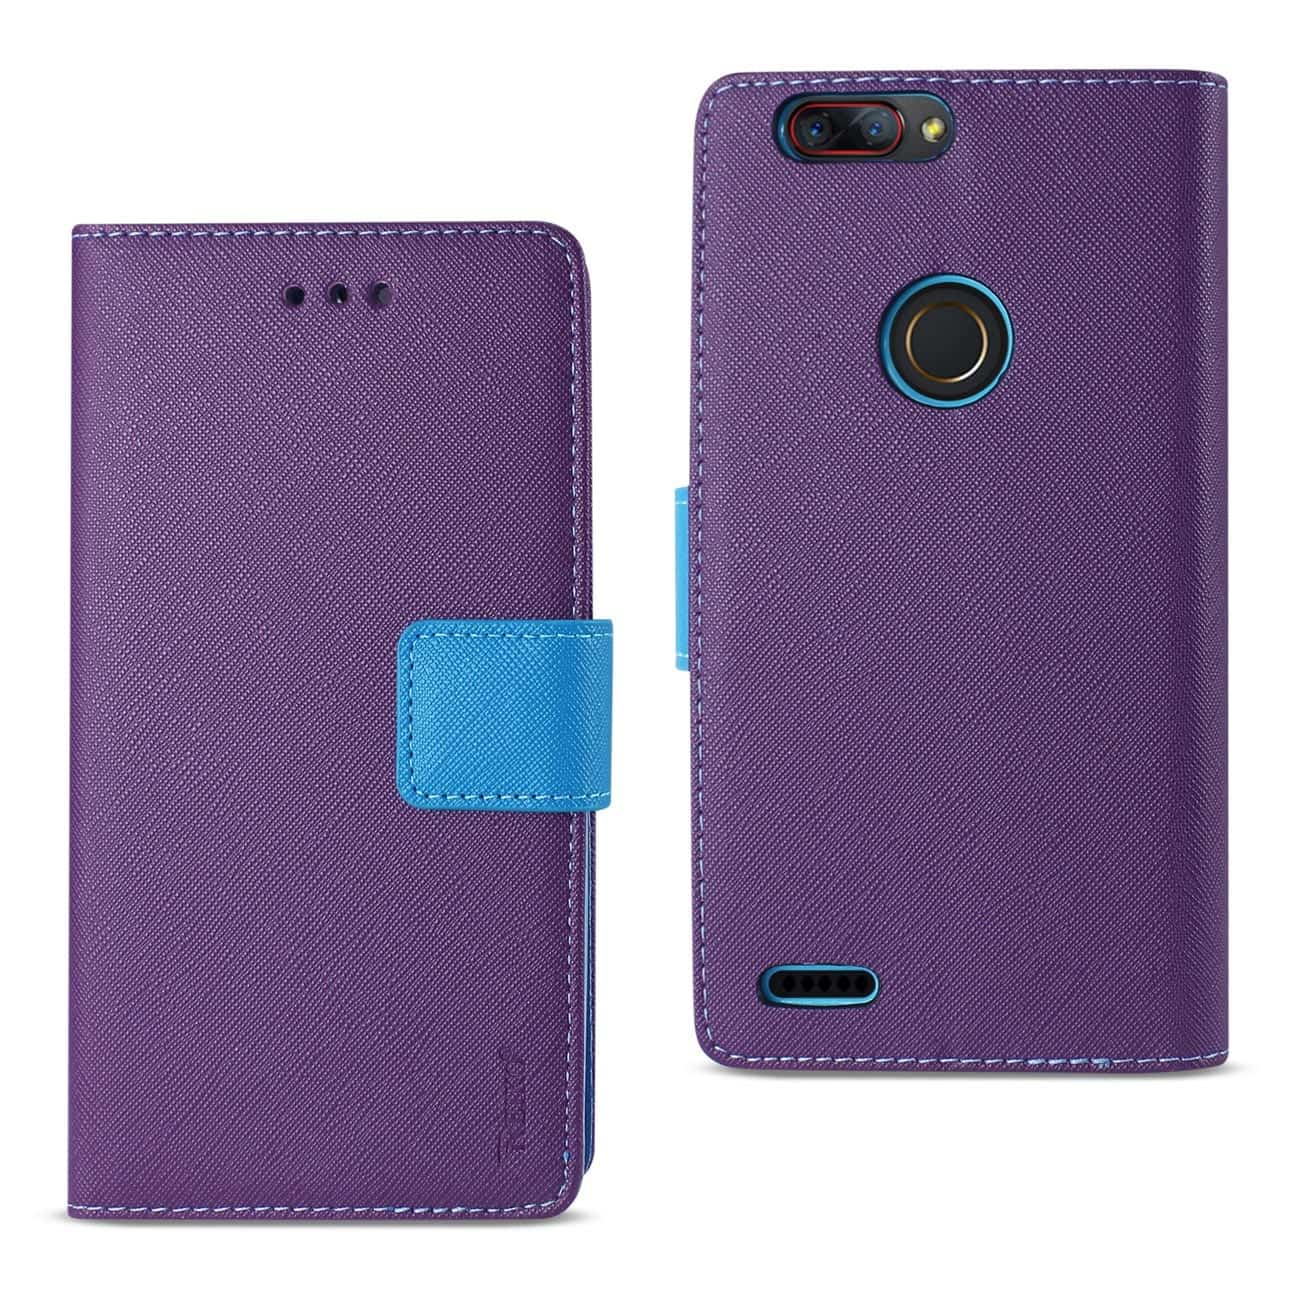 ZTE Blade Z MAX/Z982/ZTE Sequoia 3-IN-1 WALLET CASE IN PURPLE